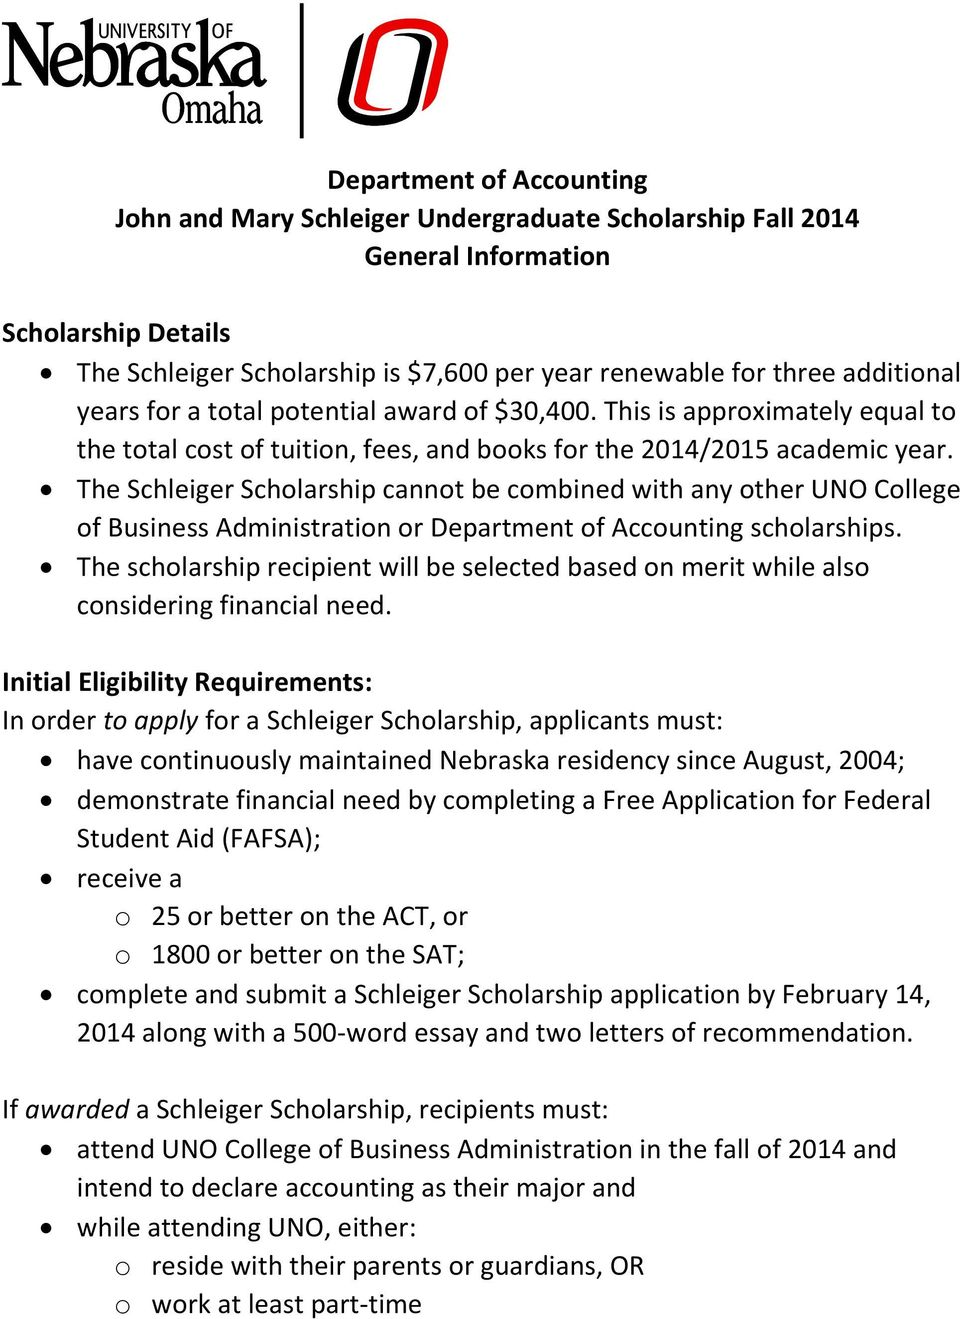 The Schleiger Scholarship cannot be combined with any other UNO College of Business Administration or Department of Accounting scholarships.